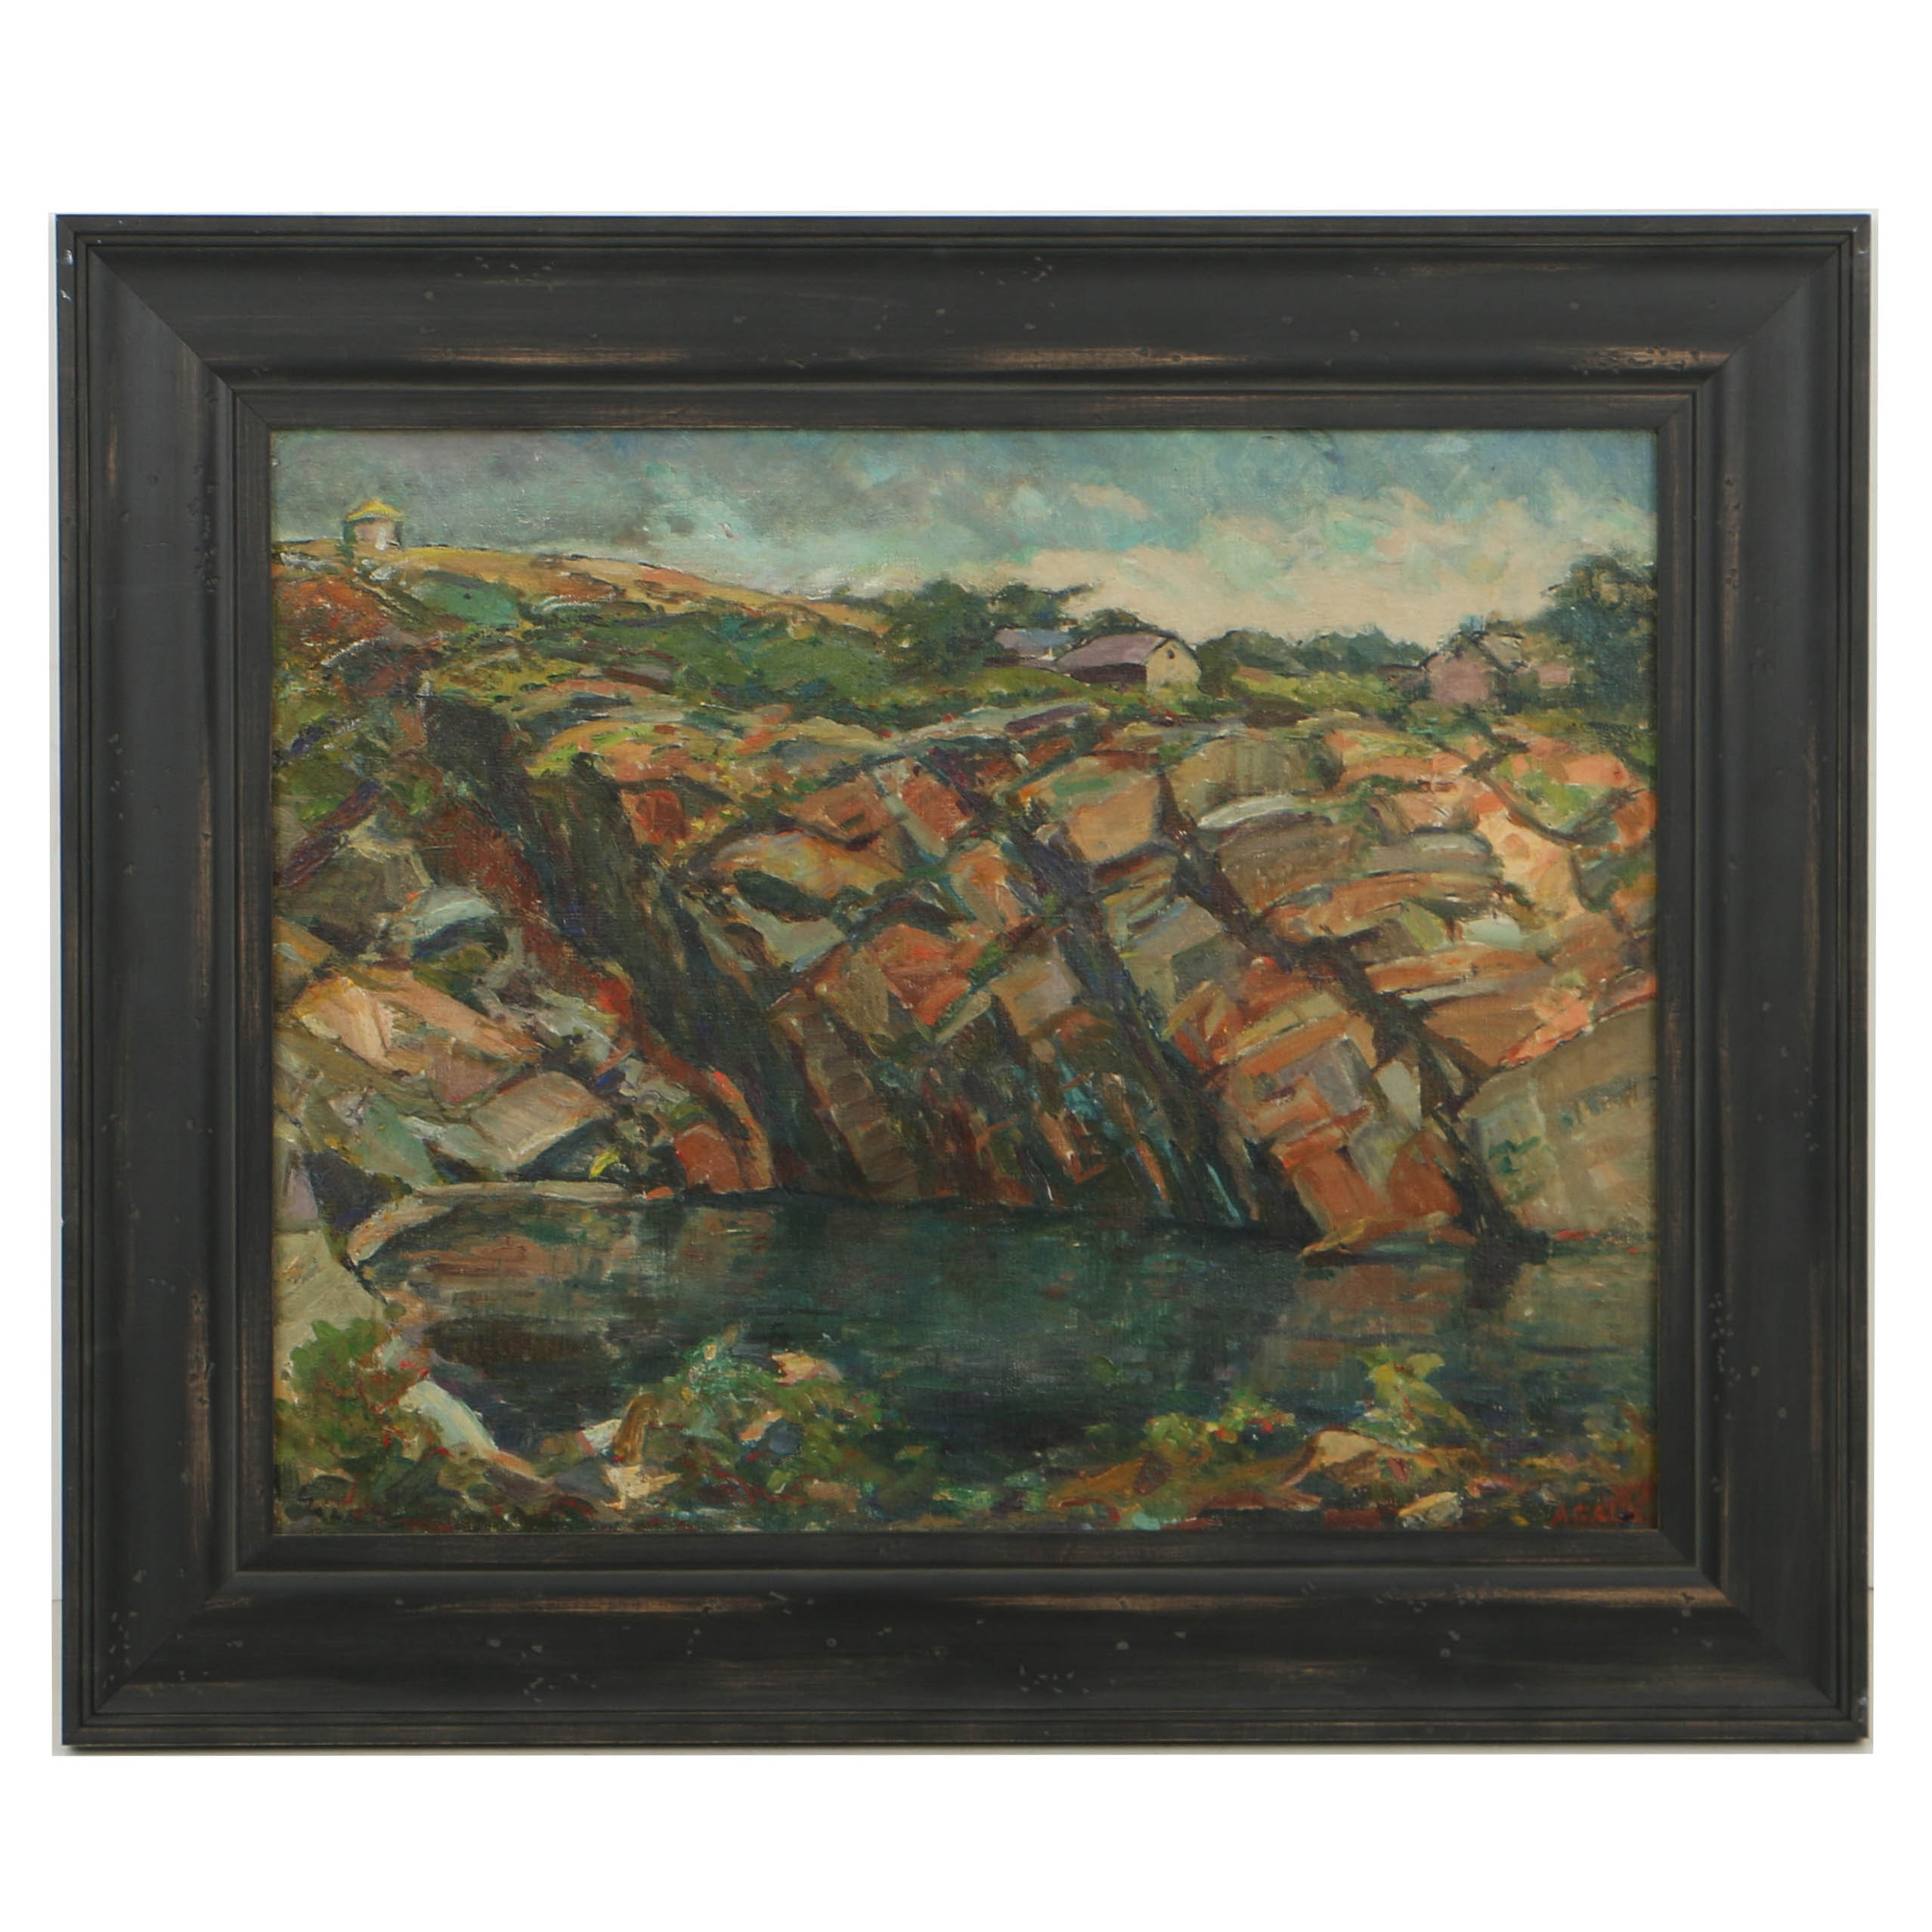 Agale Post-Impressionistic Oil Painting on Canvas of Coastal Landscape